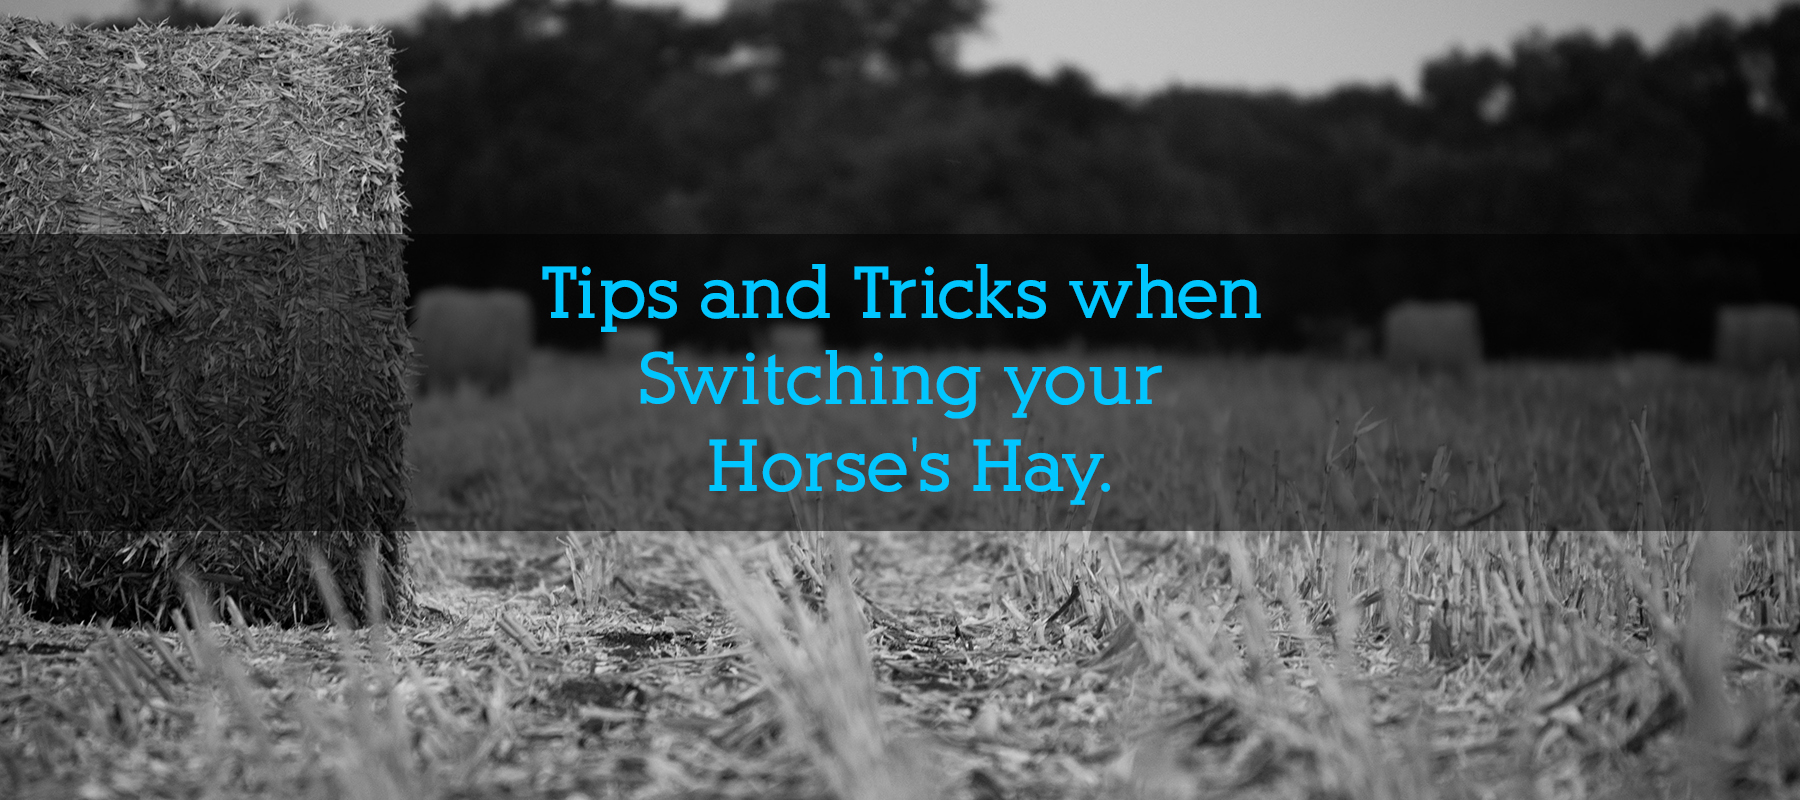 Tips and Tricks when Switching your Horse's Hay.